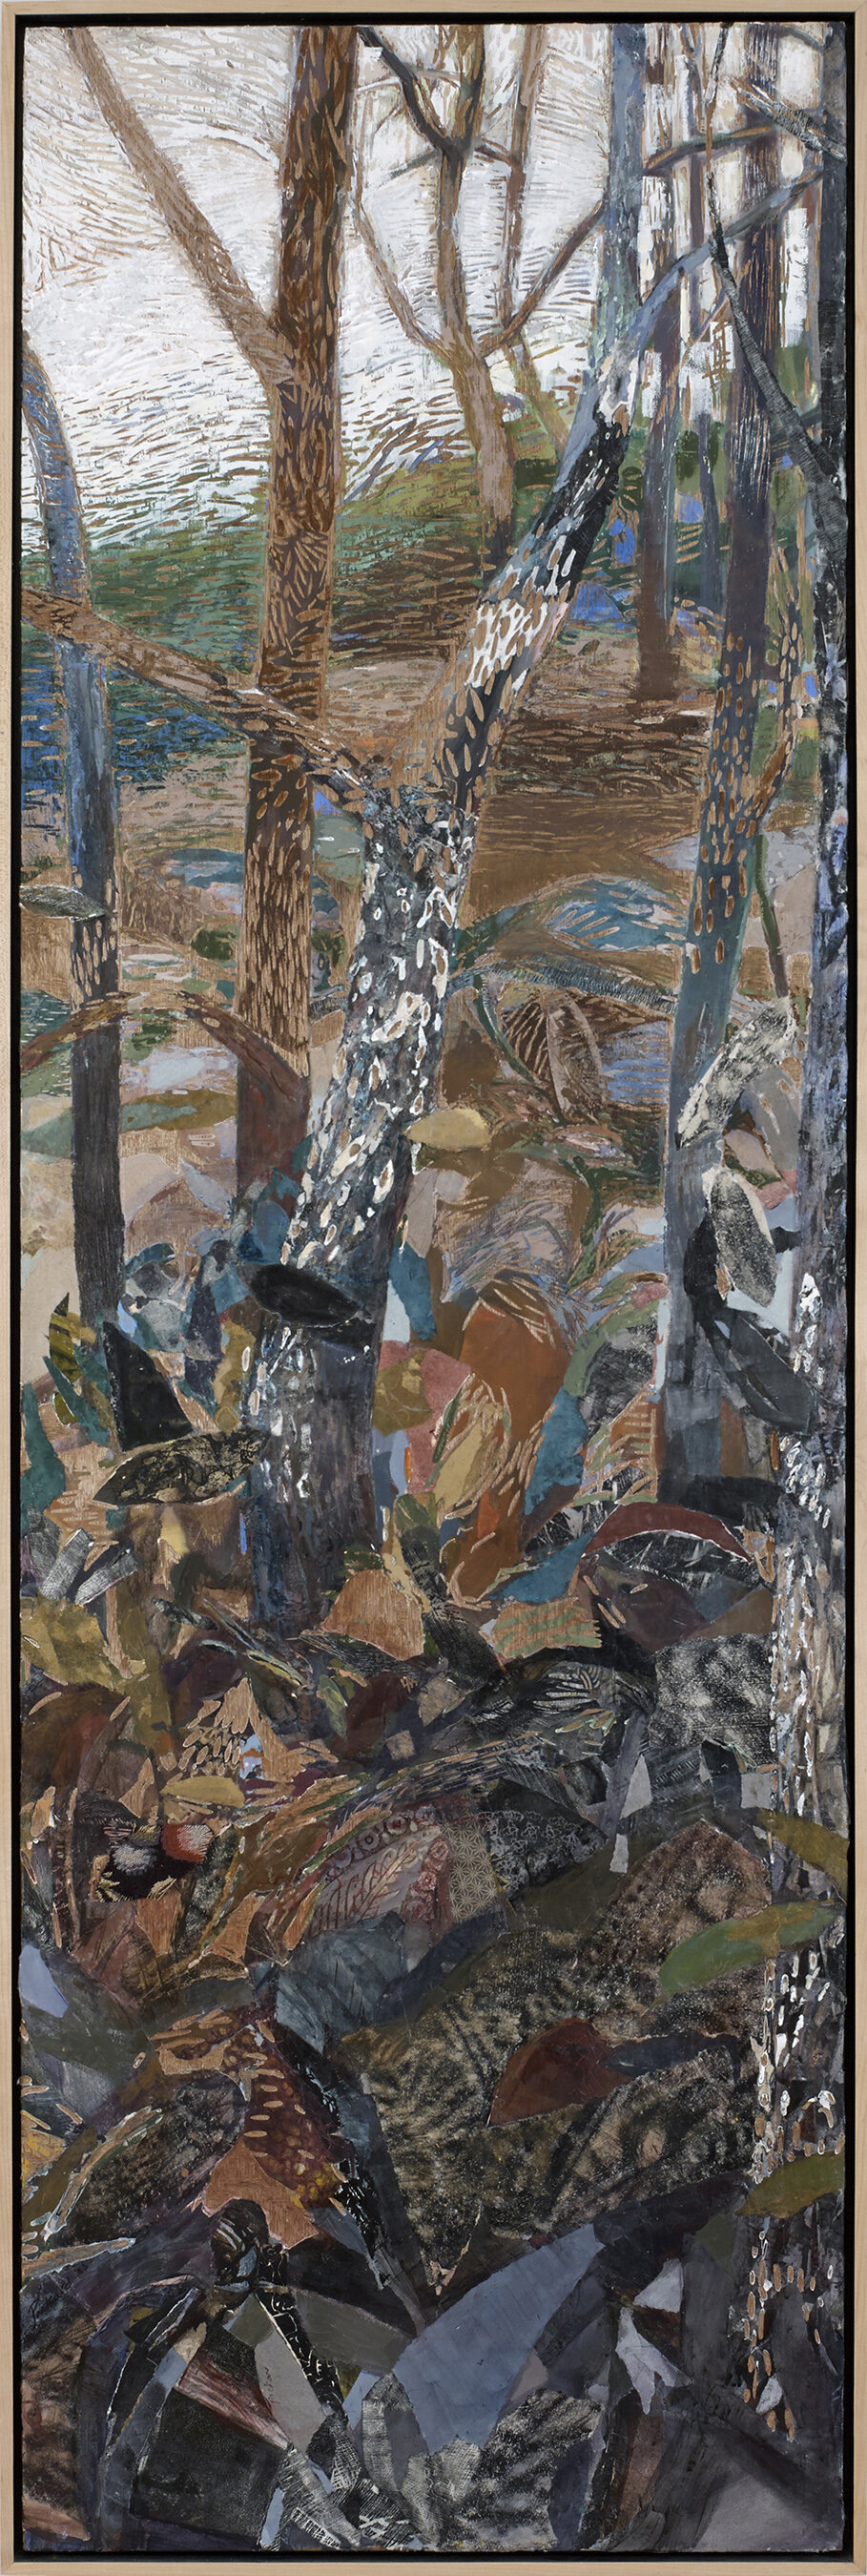 Understory , mixed media on carved wood panel, encaustic, 84 x 27.5 x 2.25 inches